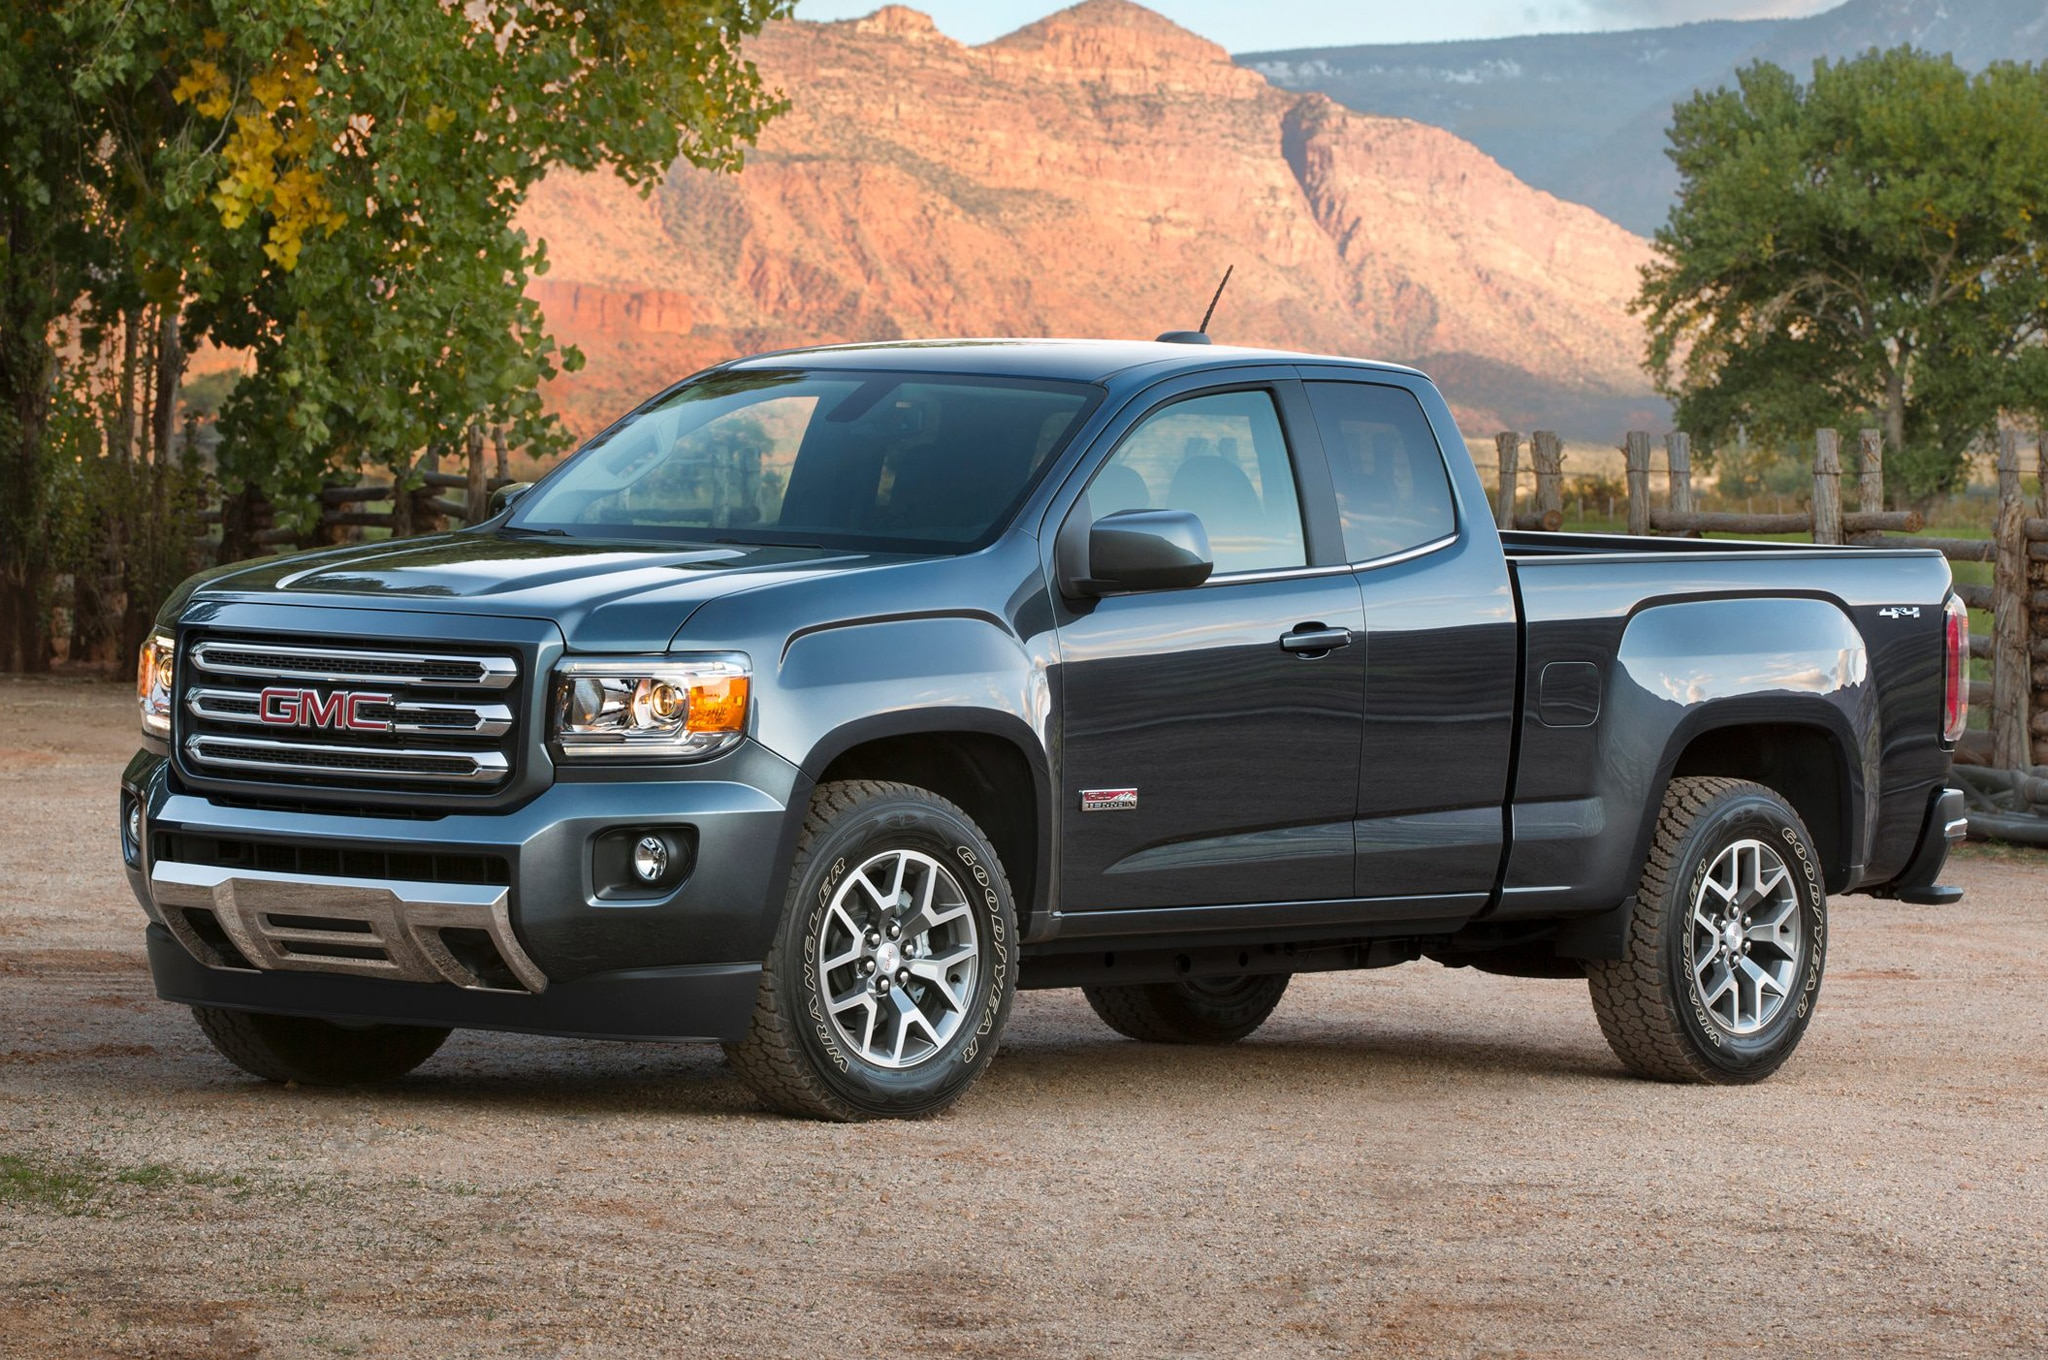 2015 GMC Canyon Front View2